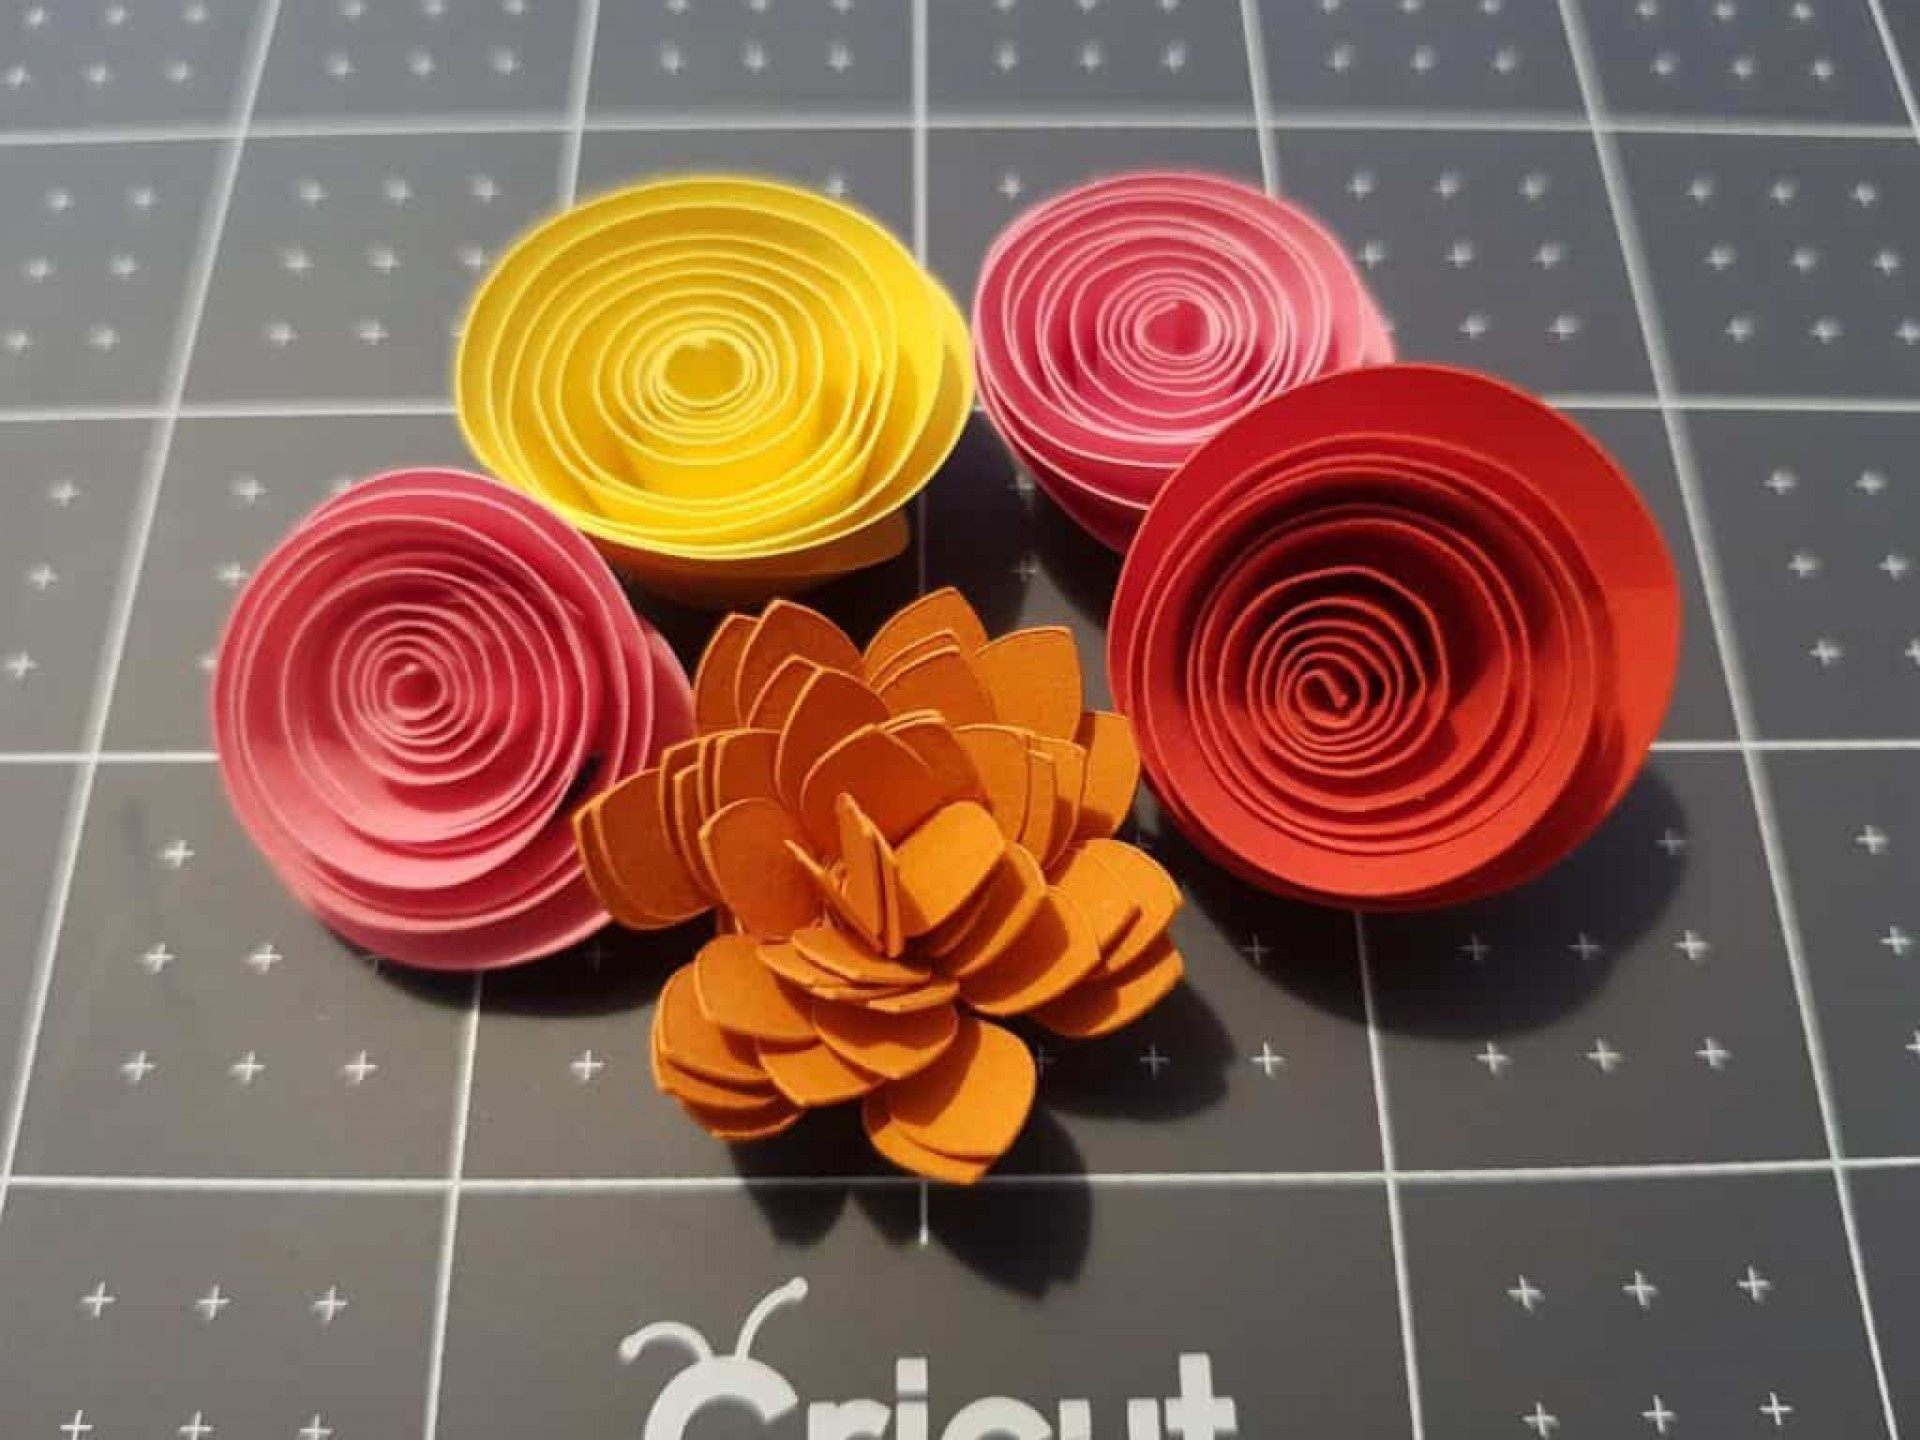 005 Impressive Free Rolled Paper Flower Template For Cricut High Definition 1920